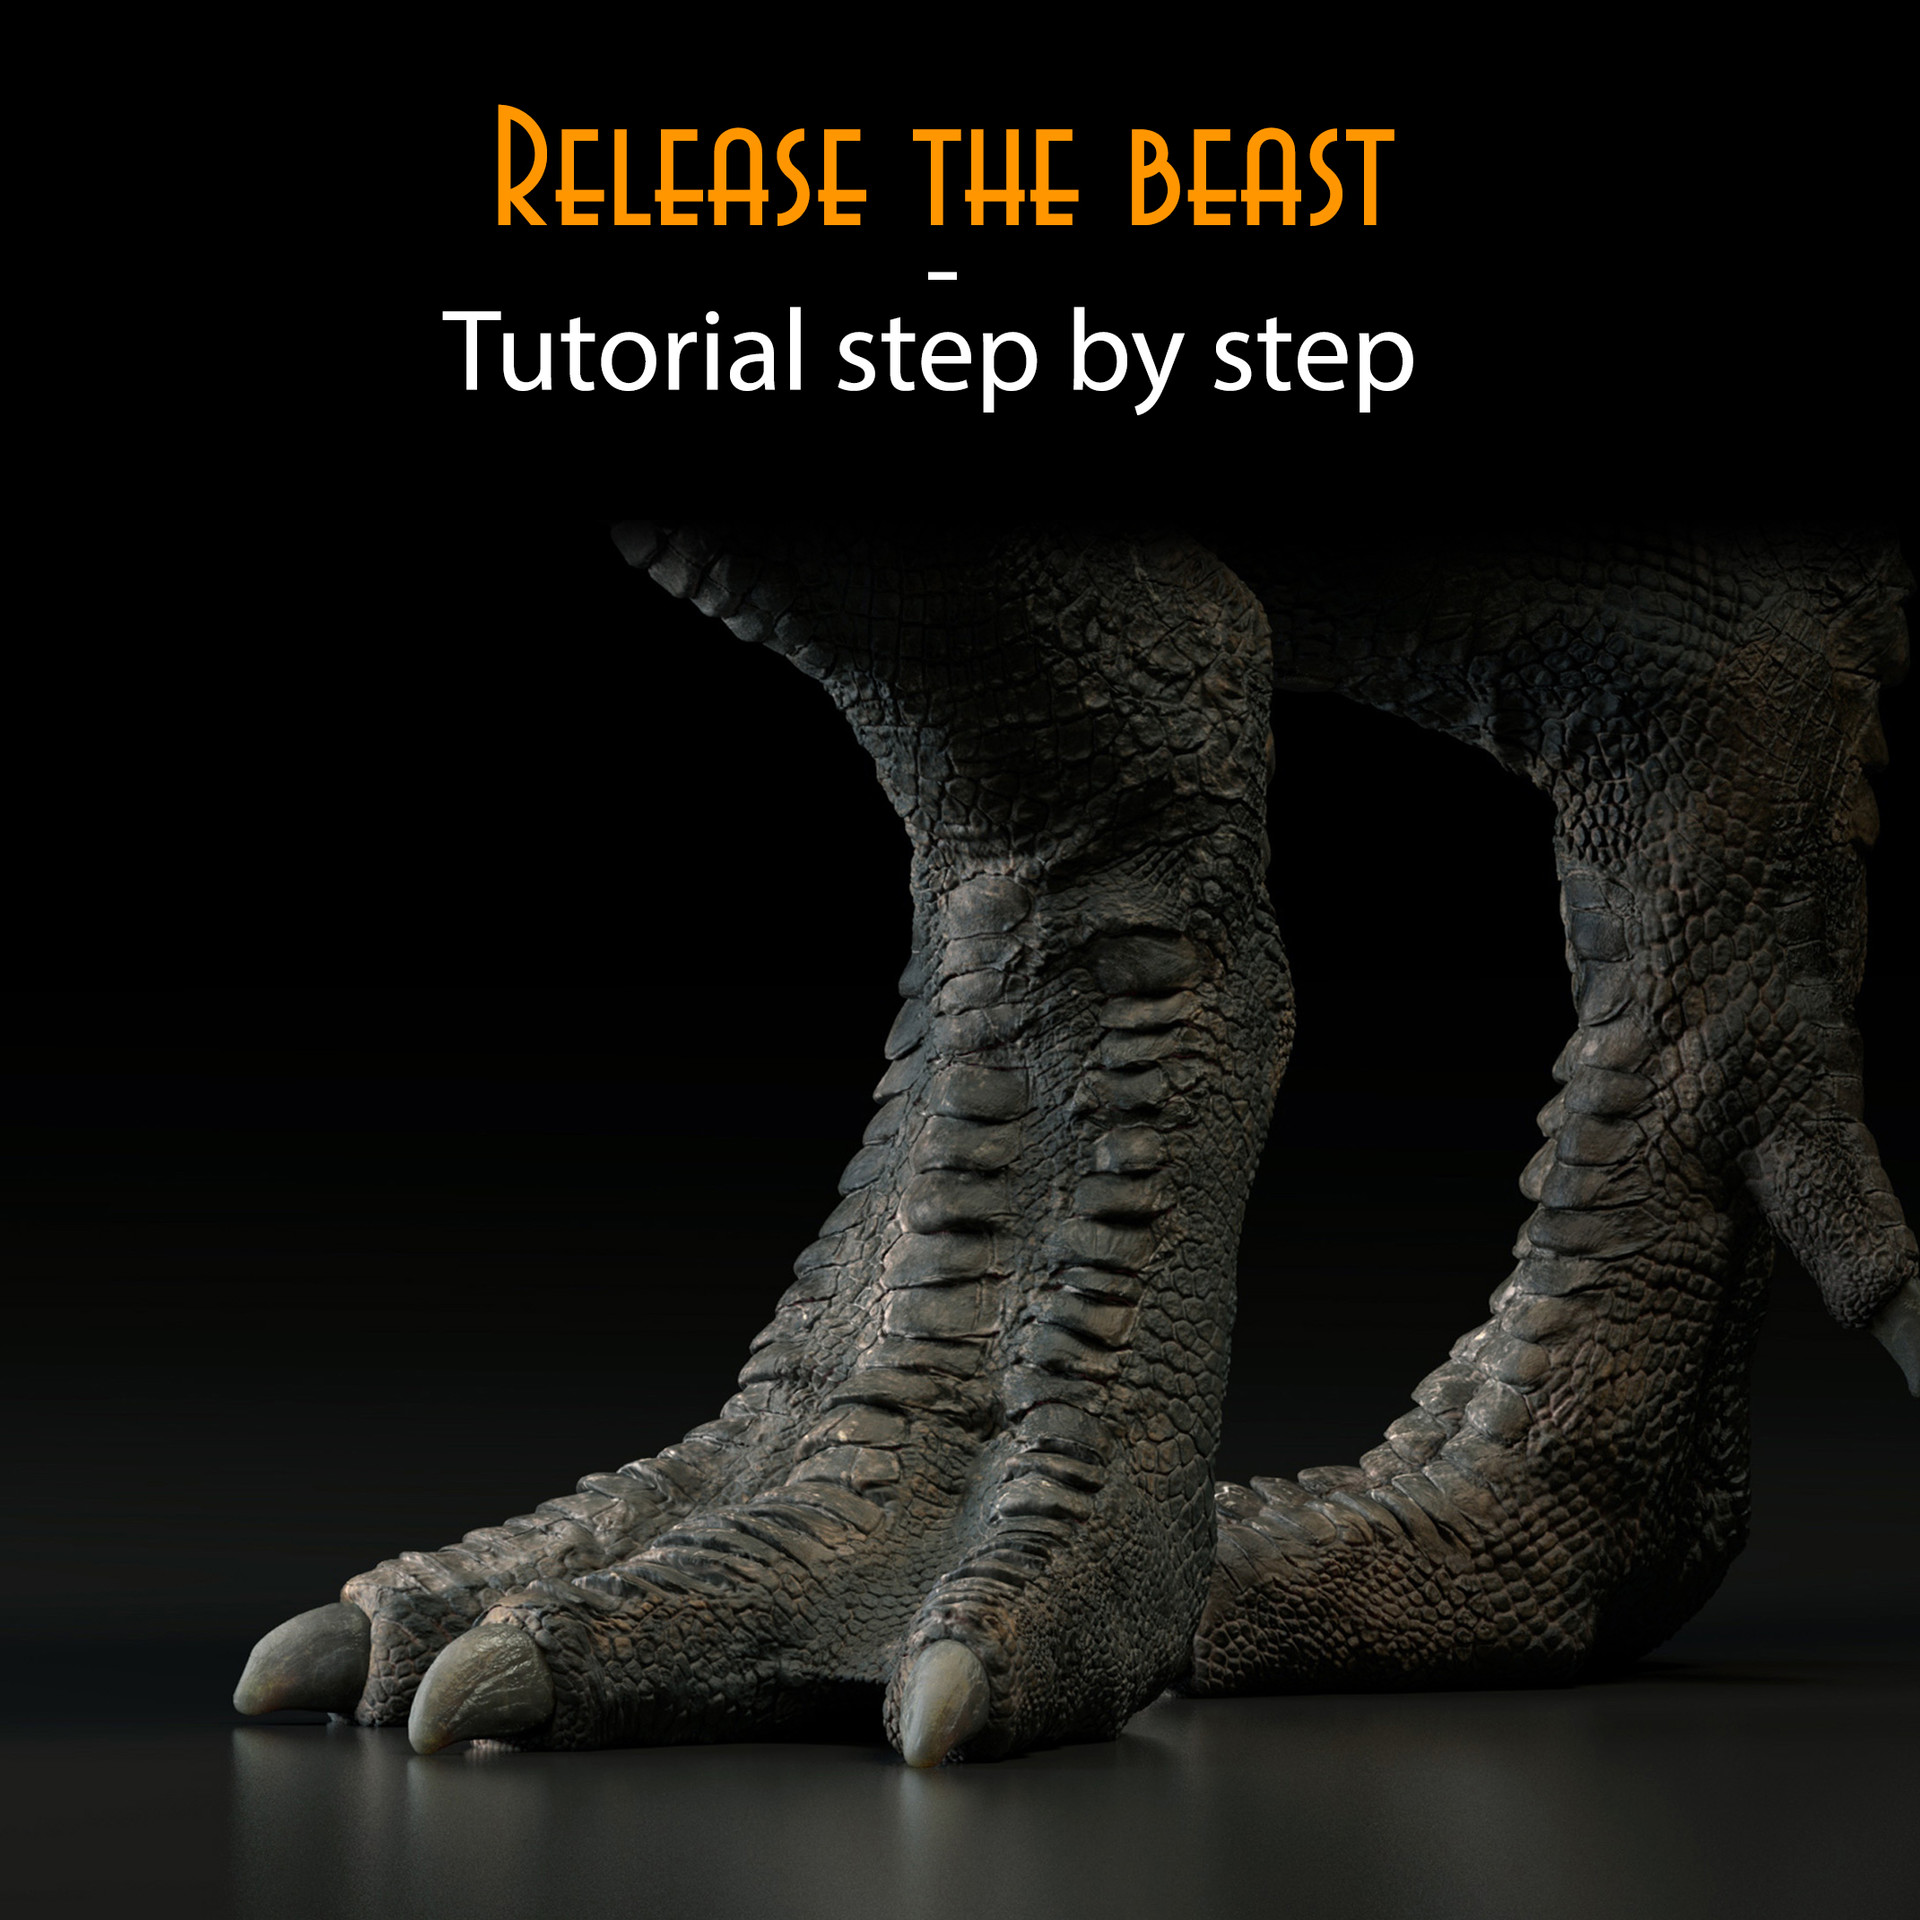 Release the beast - step by step tutorial about how to create high believable creatures for VFX